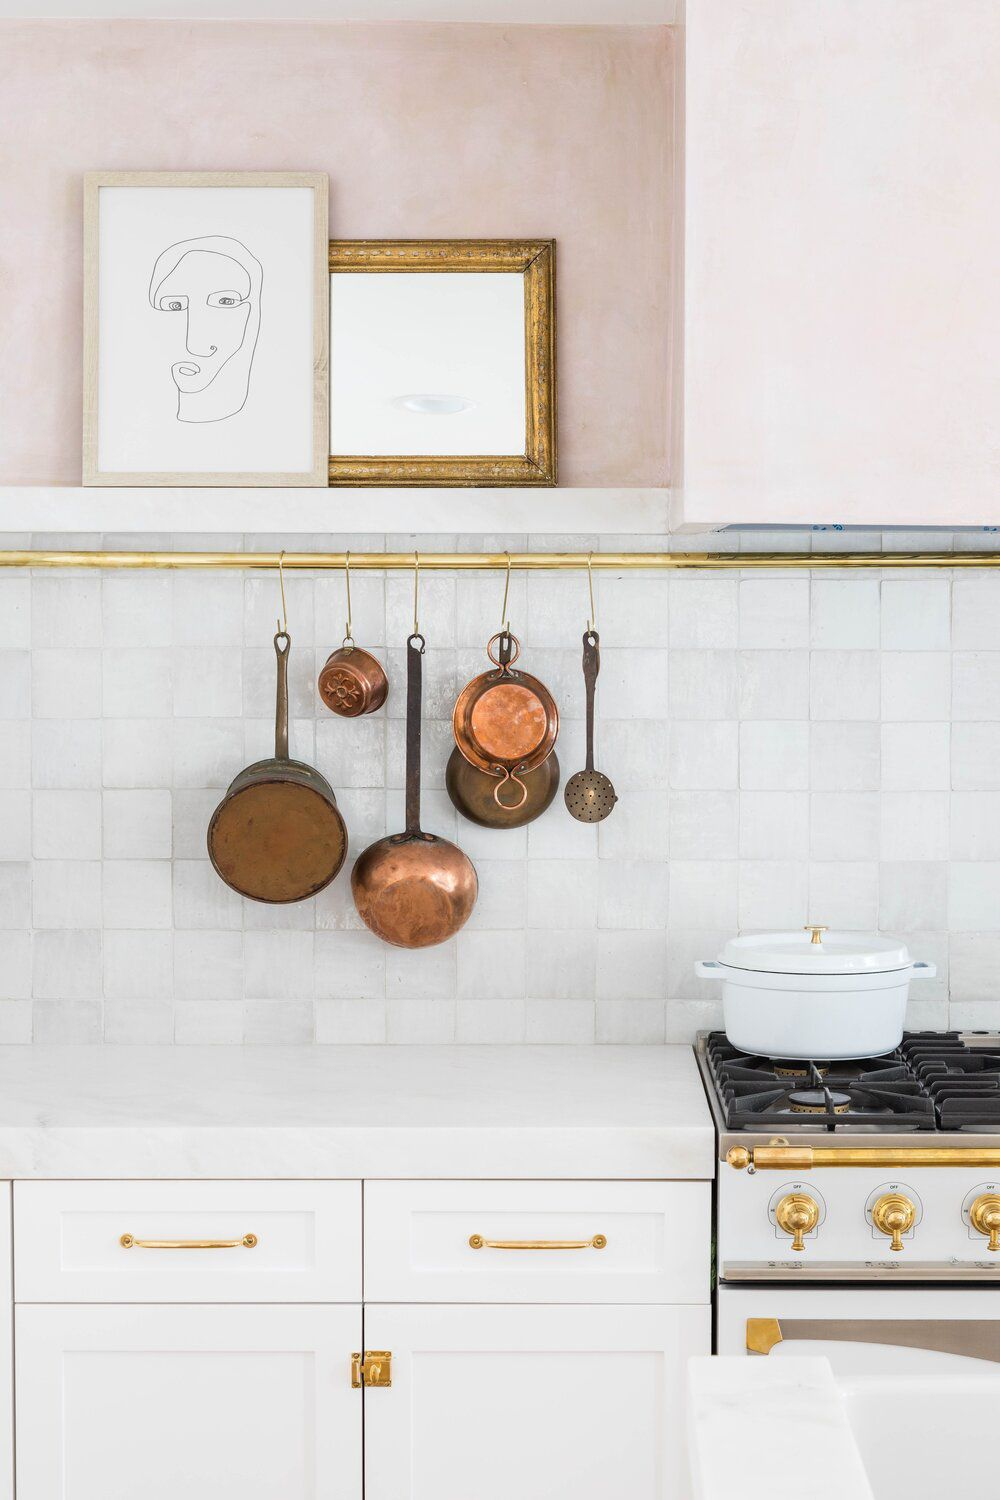 A white and pink kitchen with a metal rod holding several rustic copper pots